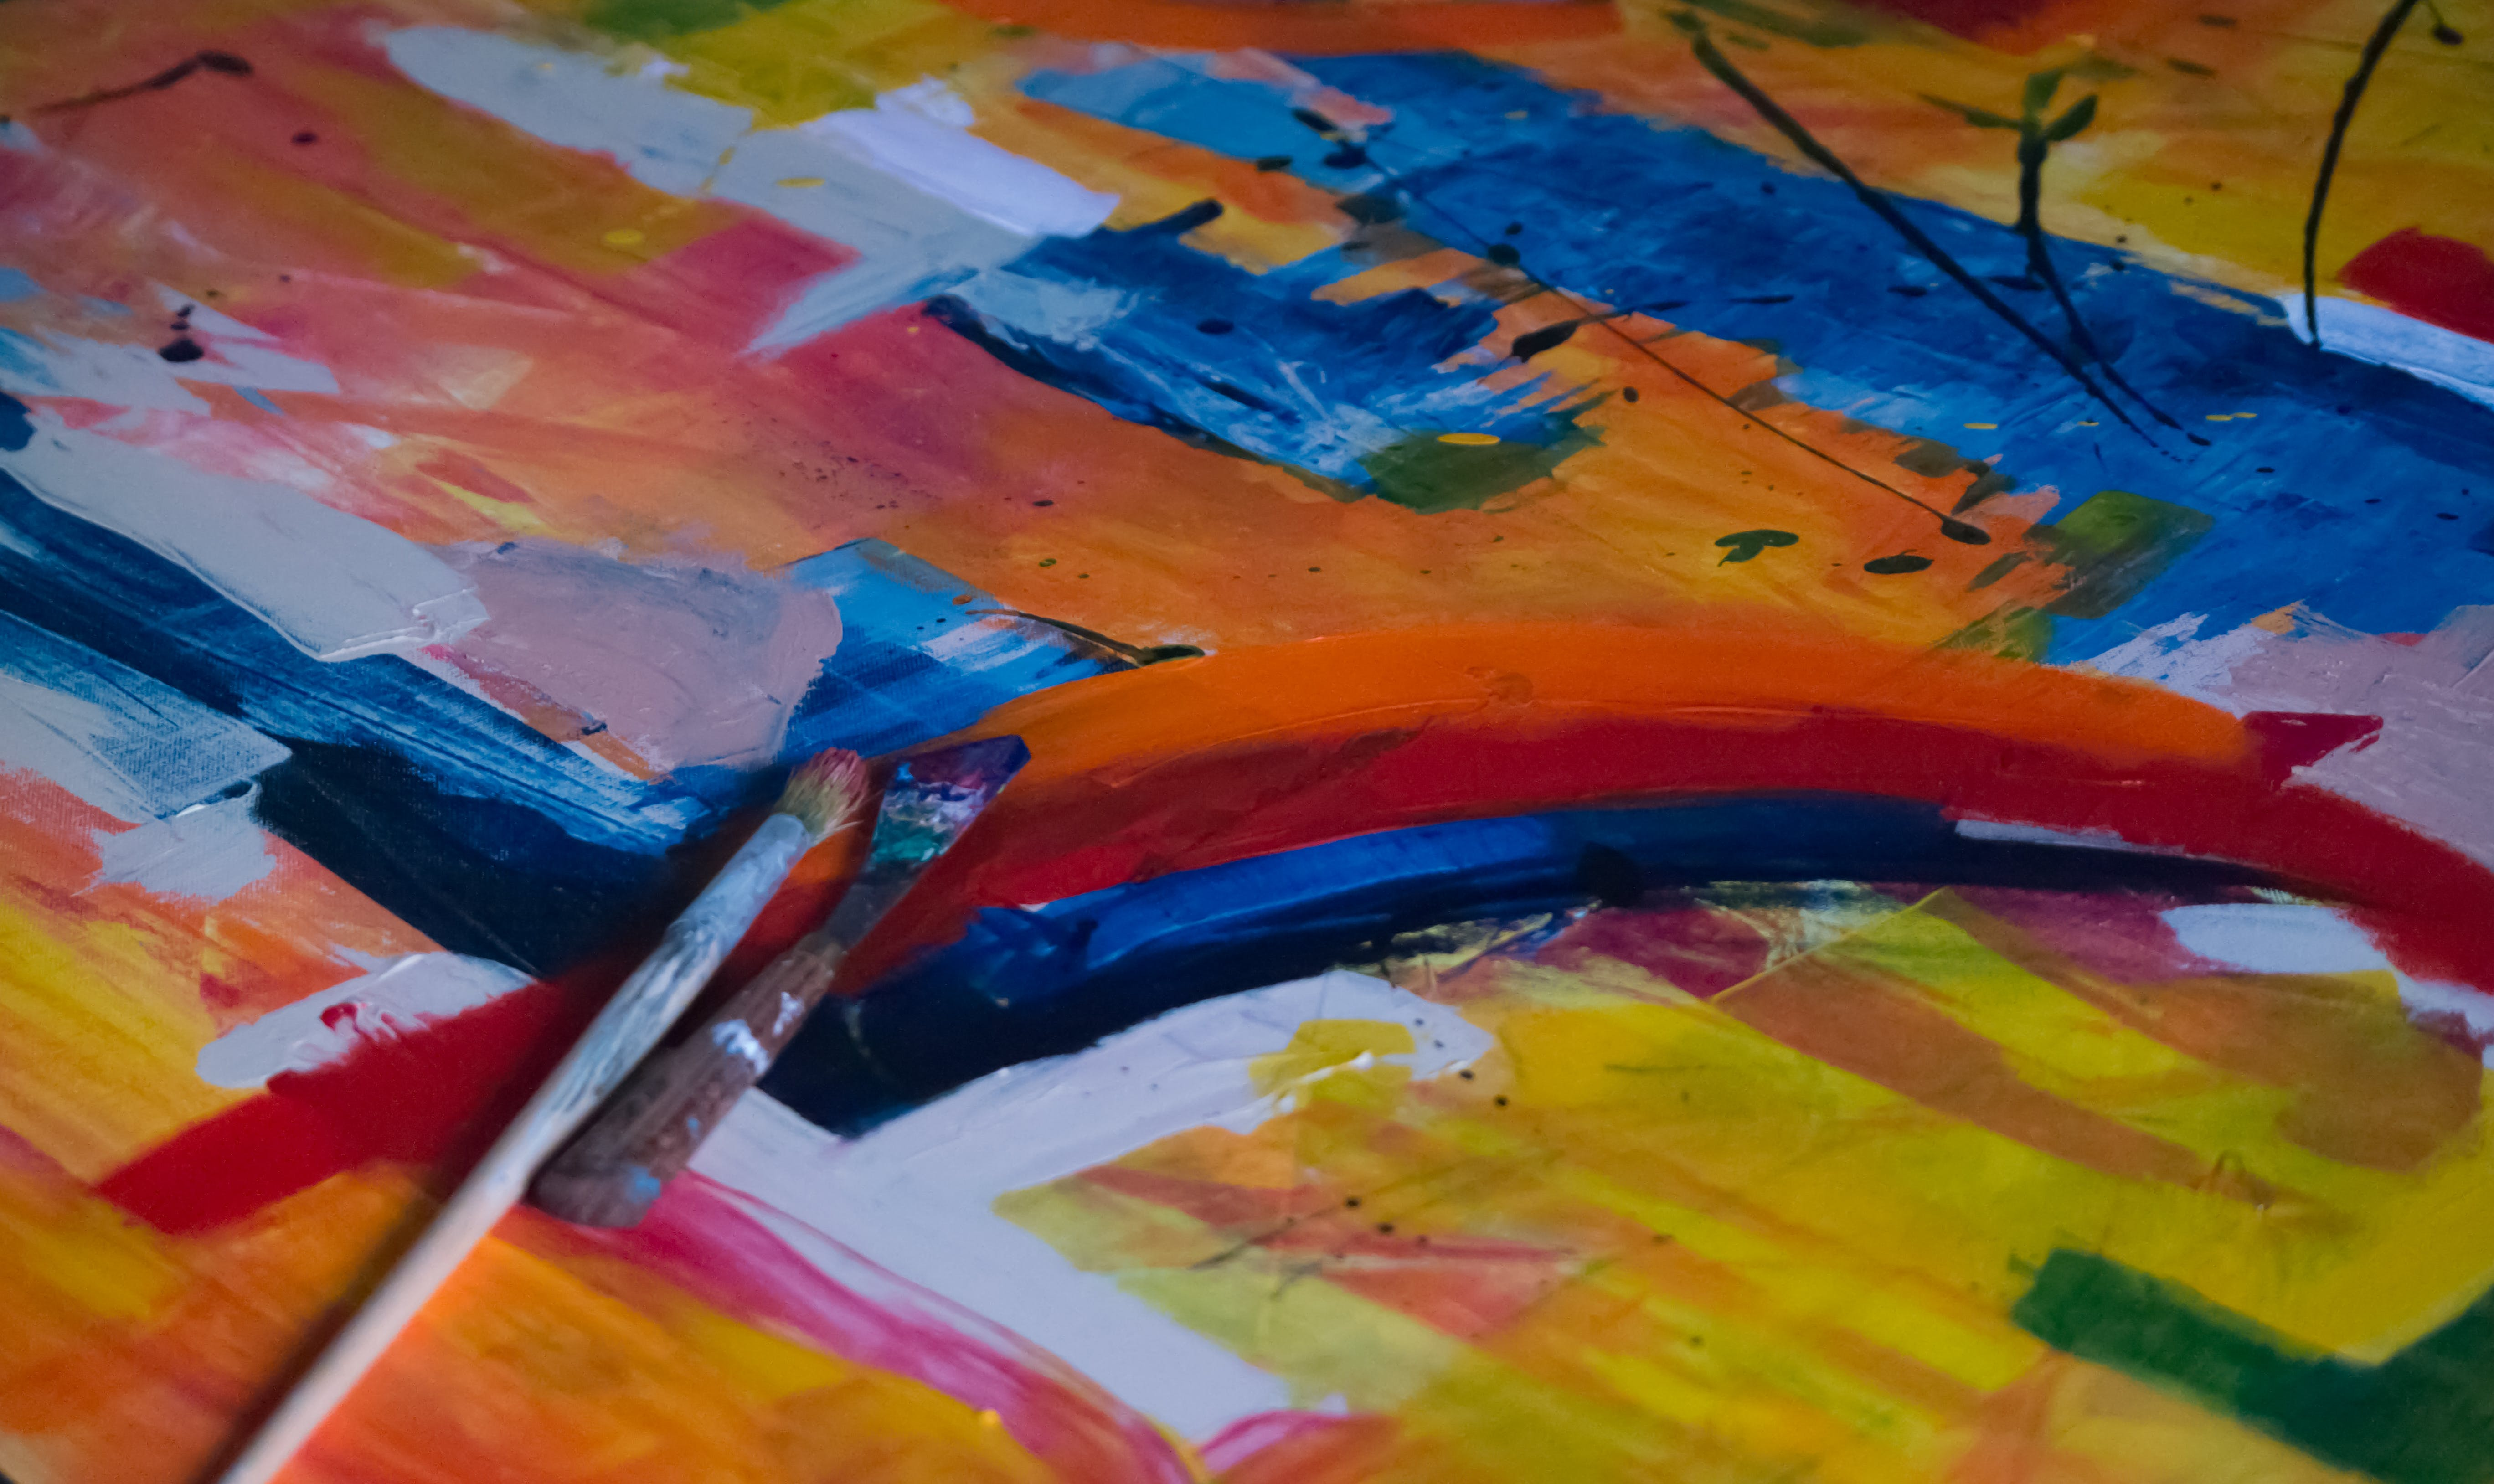 Two Paintbrushes on Multicolored Abstract Painting